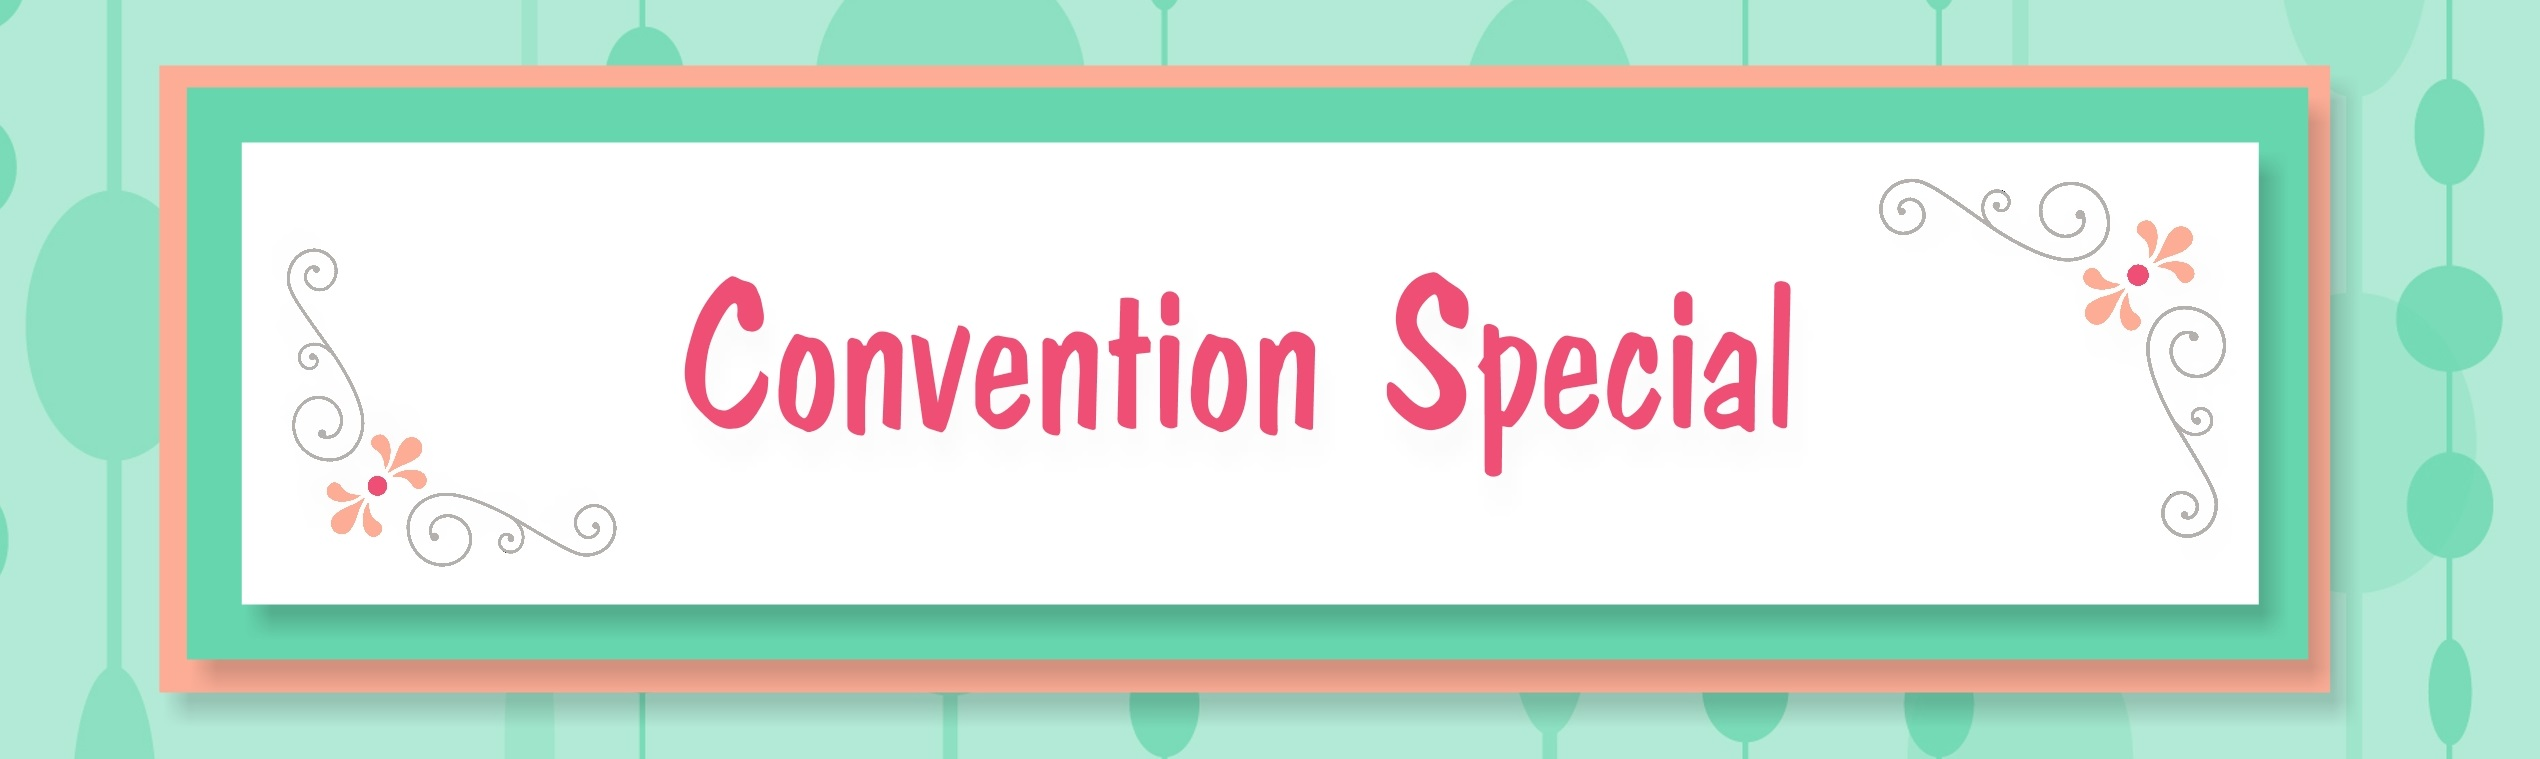 convention special banner